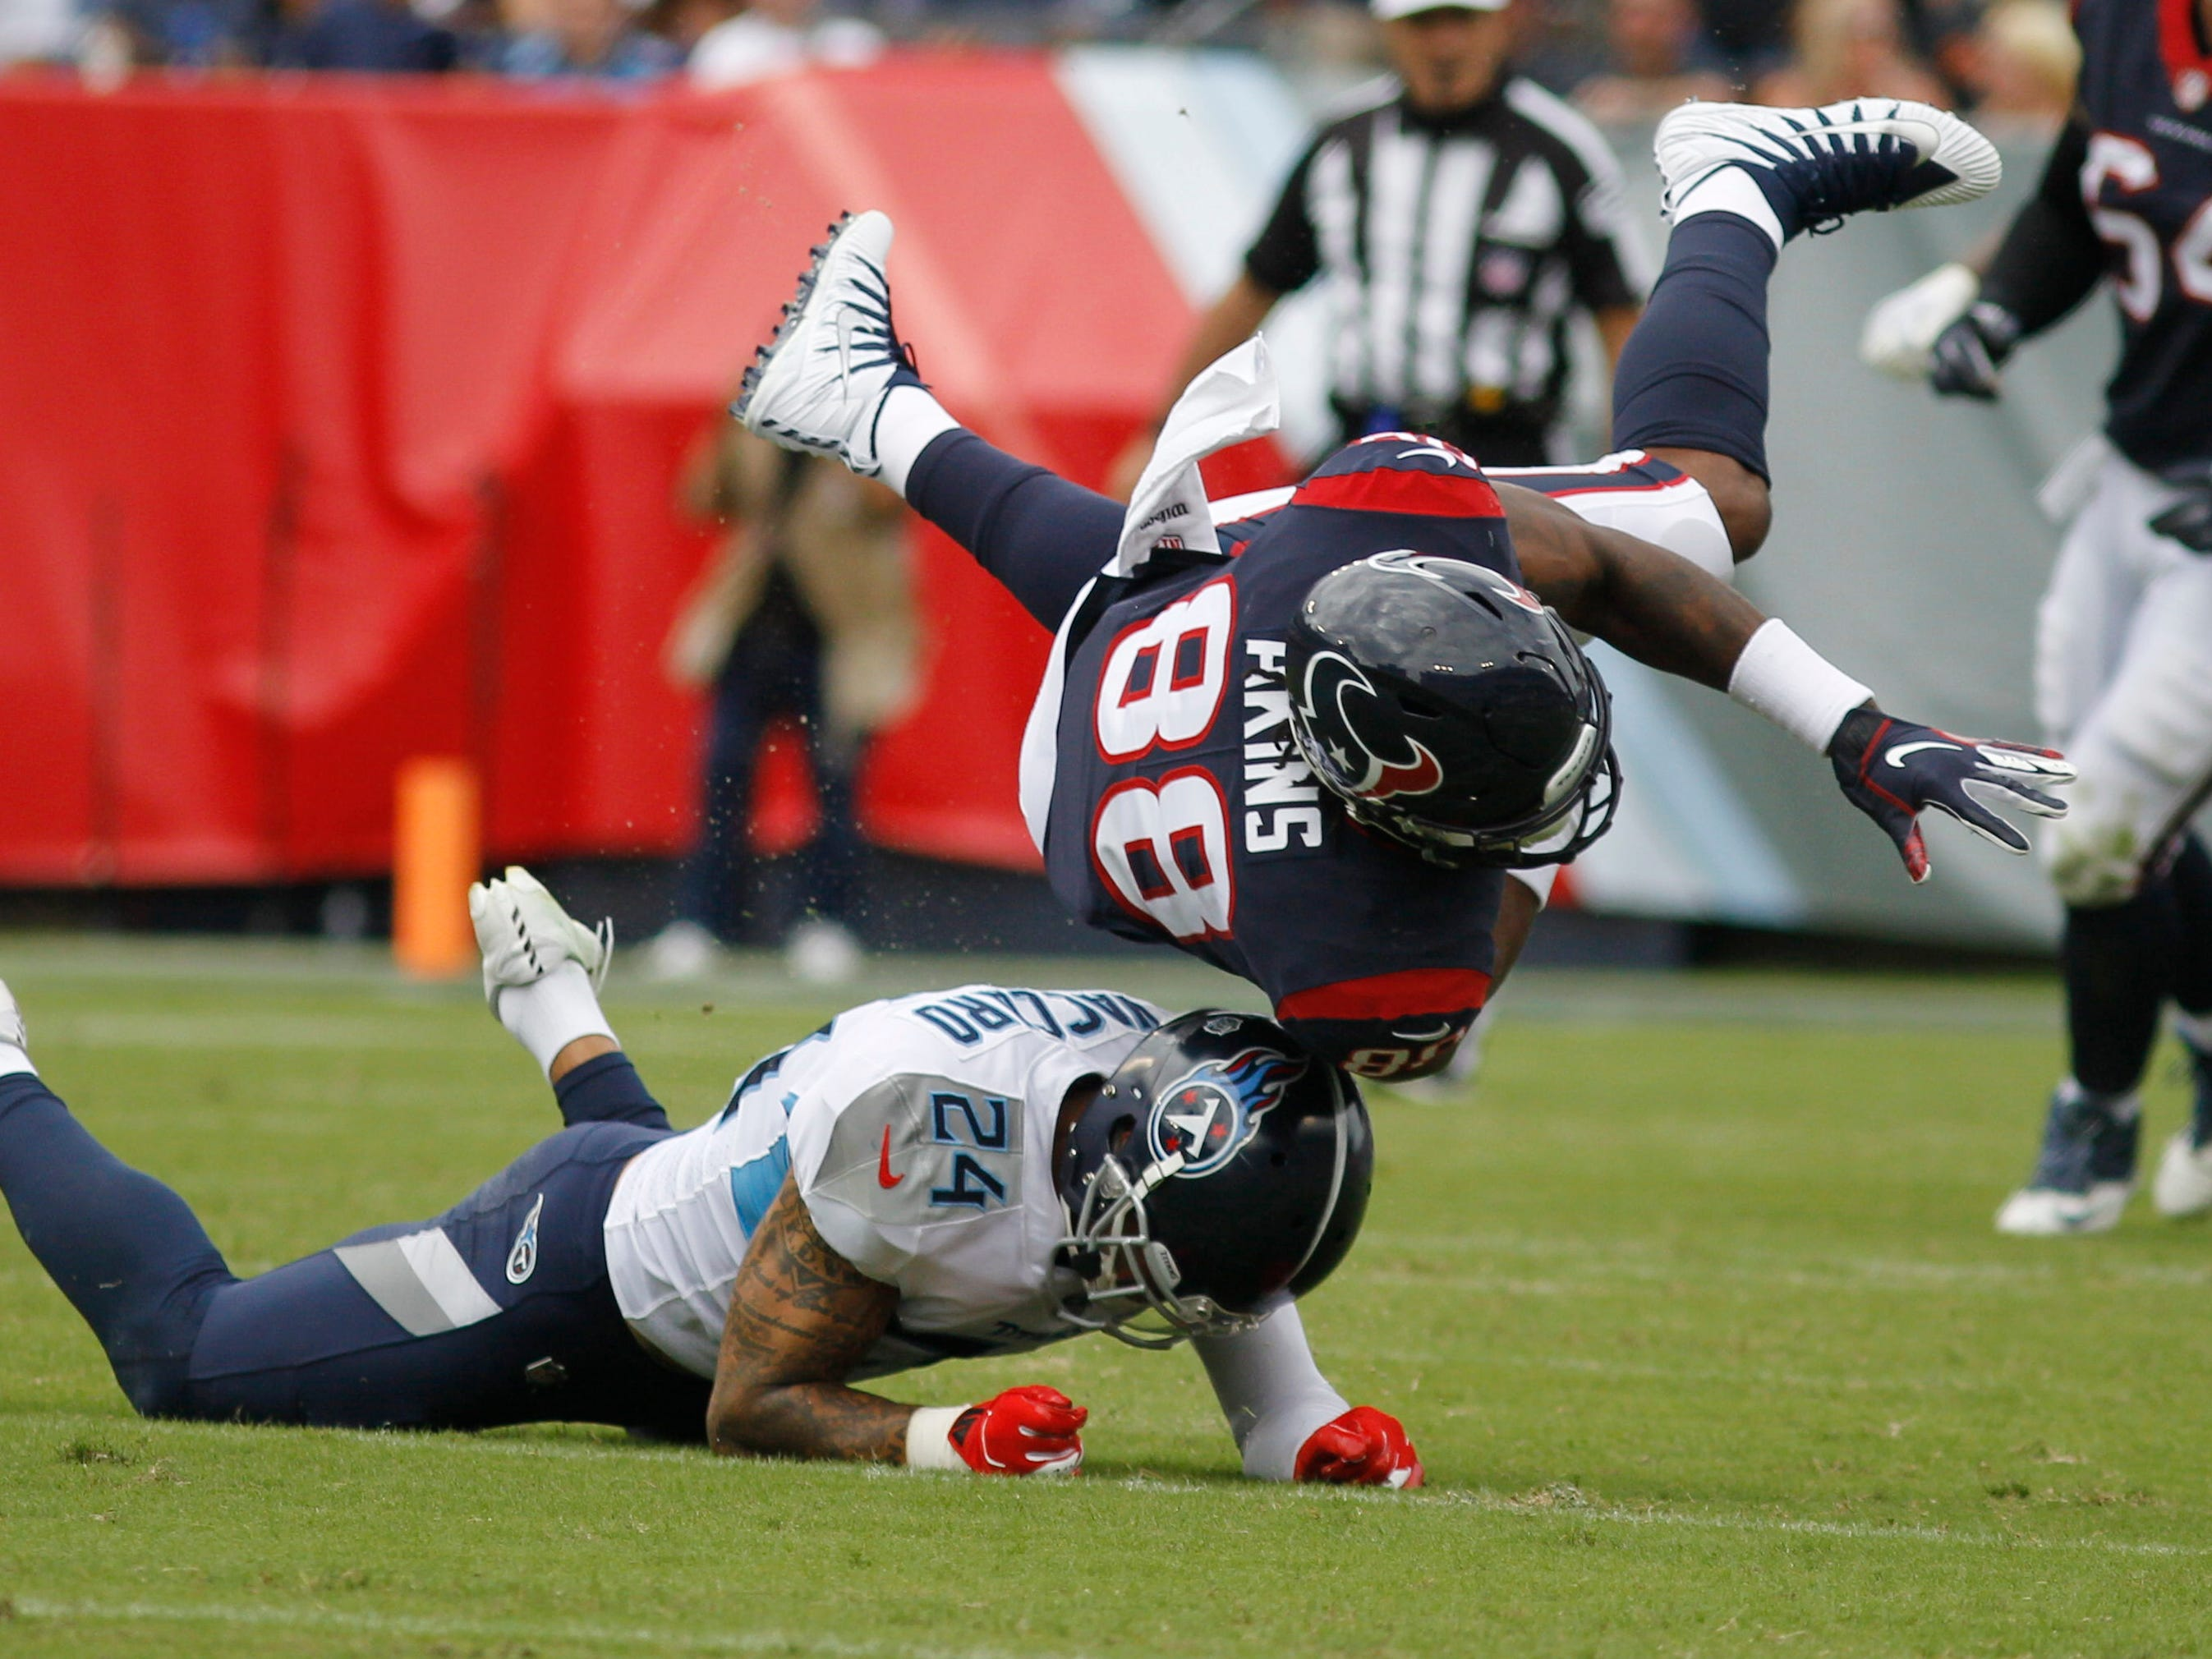 Texans tight end Jordan Akins (88) goes flying after being hit by Titans safety Kenny Vaccaro (24) in the second quarter at Nissan Stadium Sunday, Sept. 16, 2018, in Nashville, Tenn.